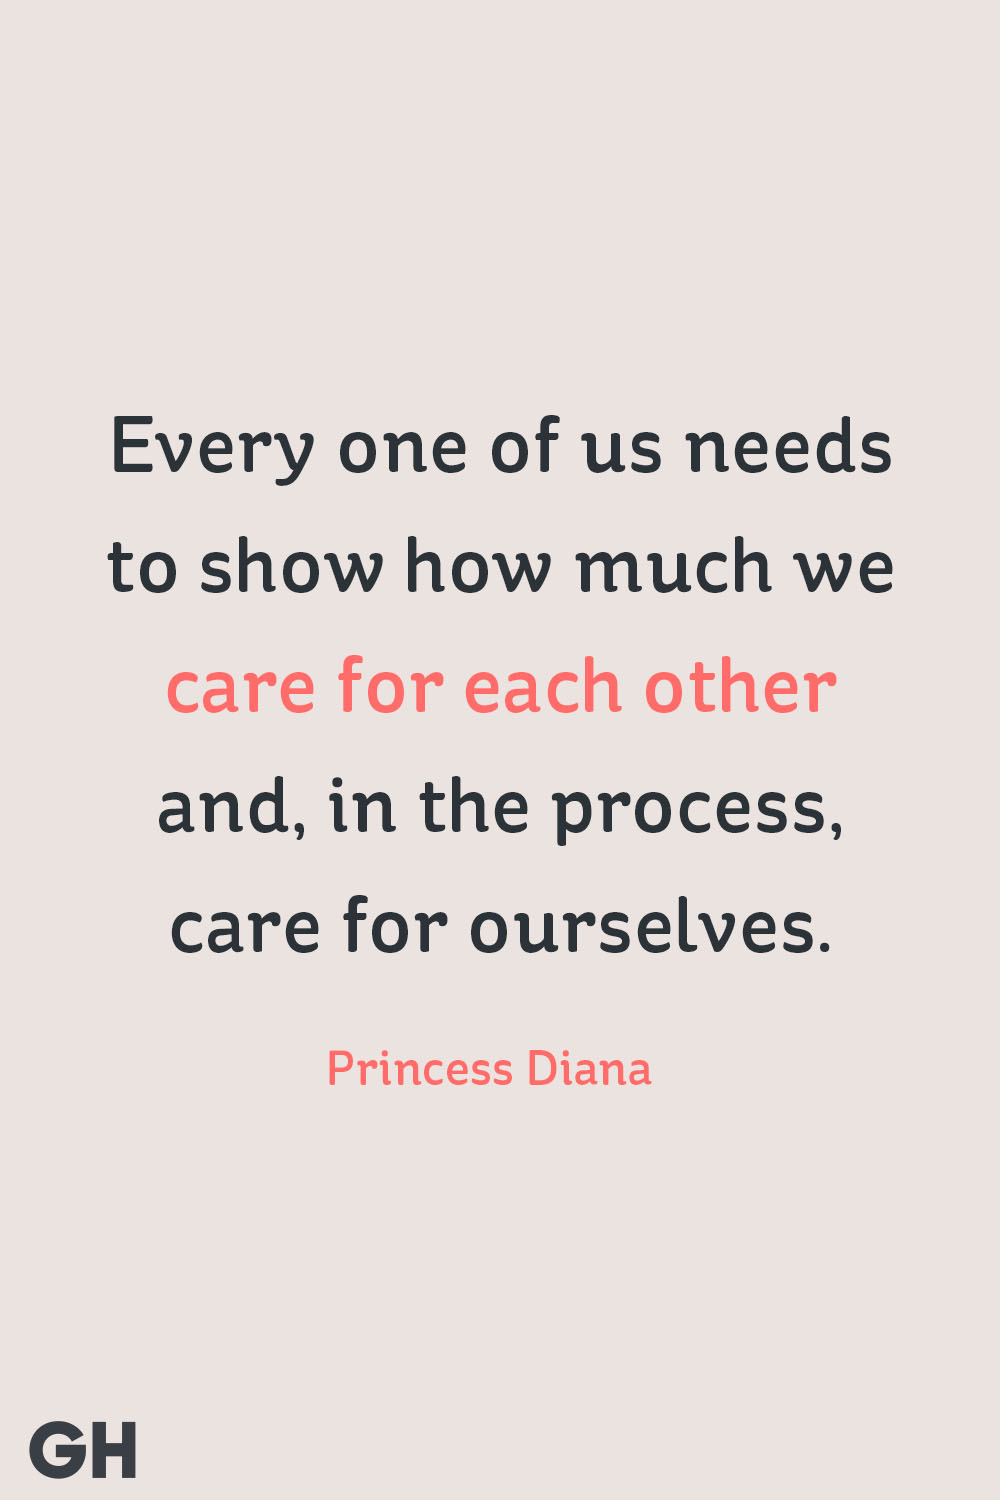 Quotes About Caring Ghk.hcdn.coassets1734Princessdianaquotecar.